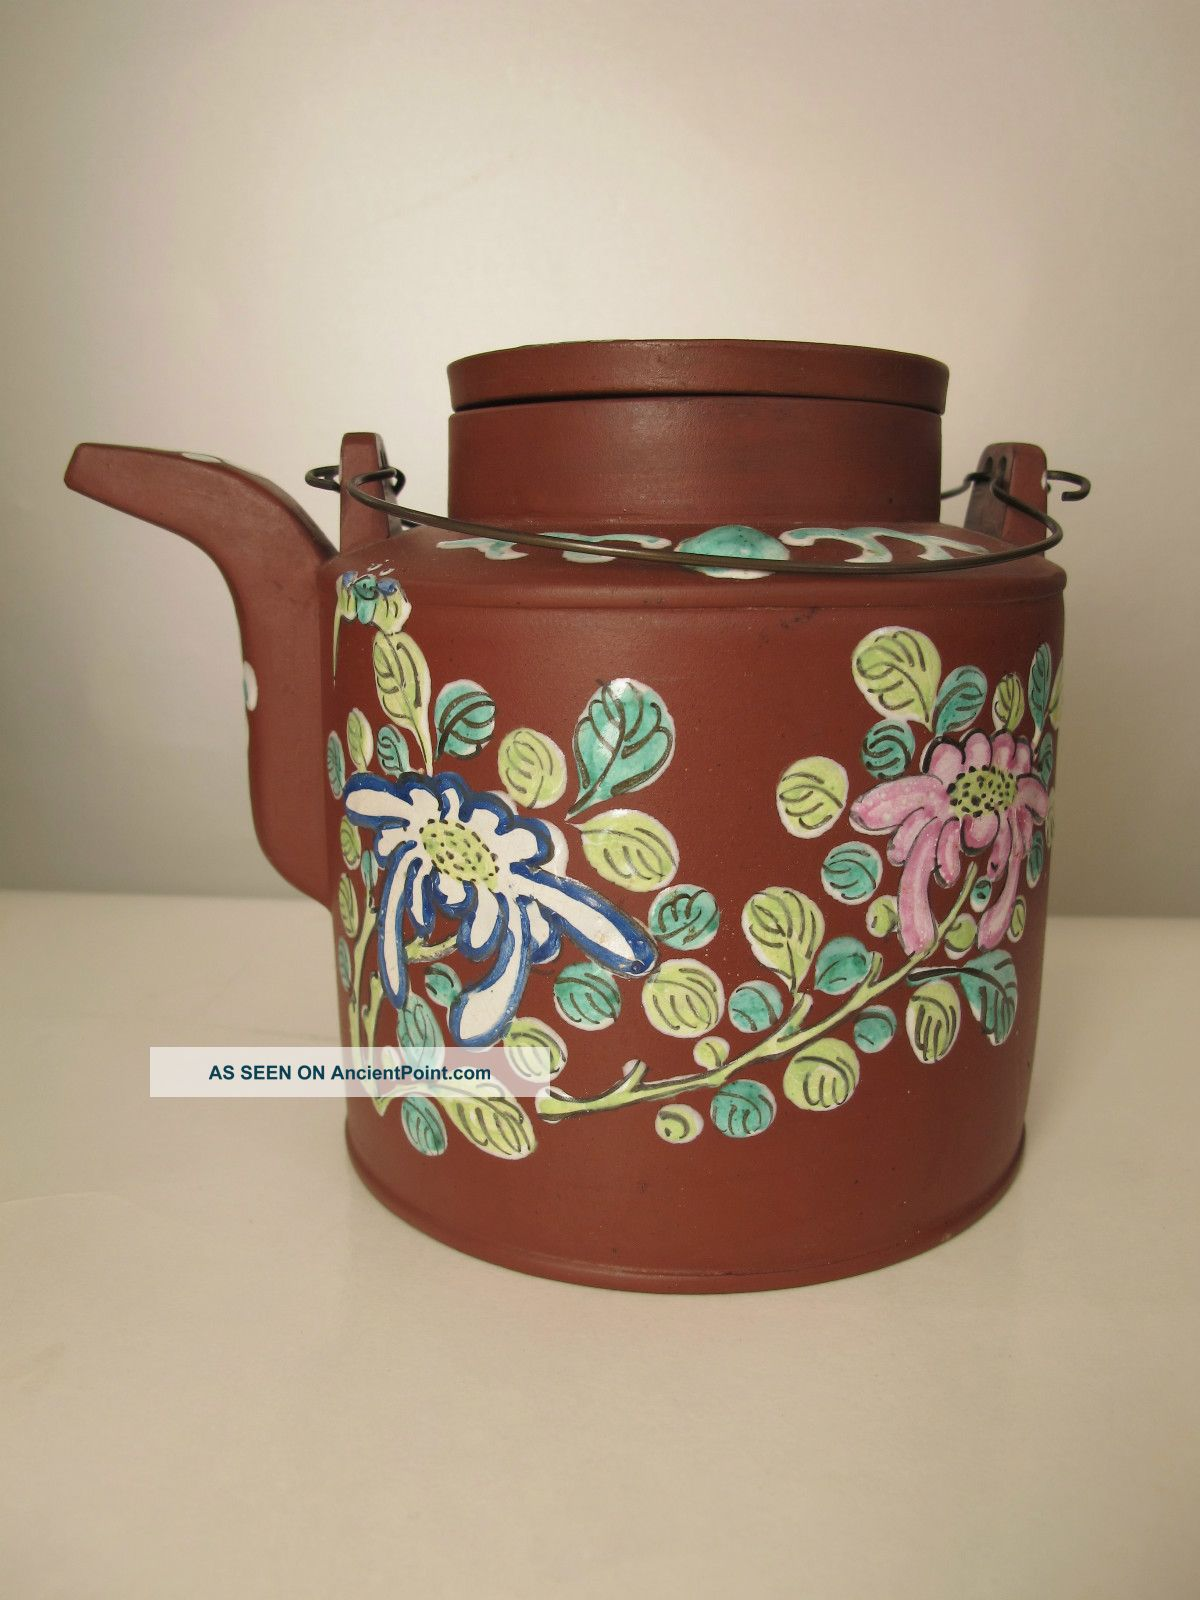 Very Fine Antique Chinese Yixing Clay Teapot With Enamel Docoration Teapots photo